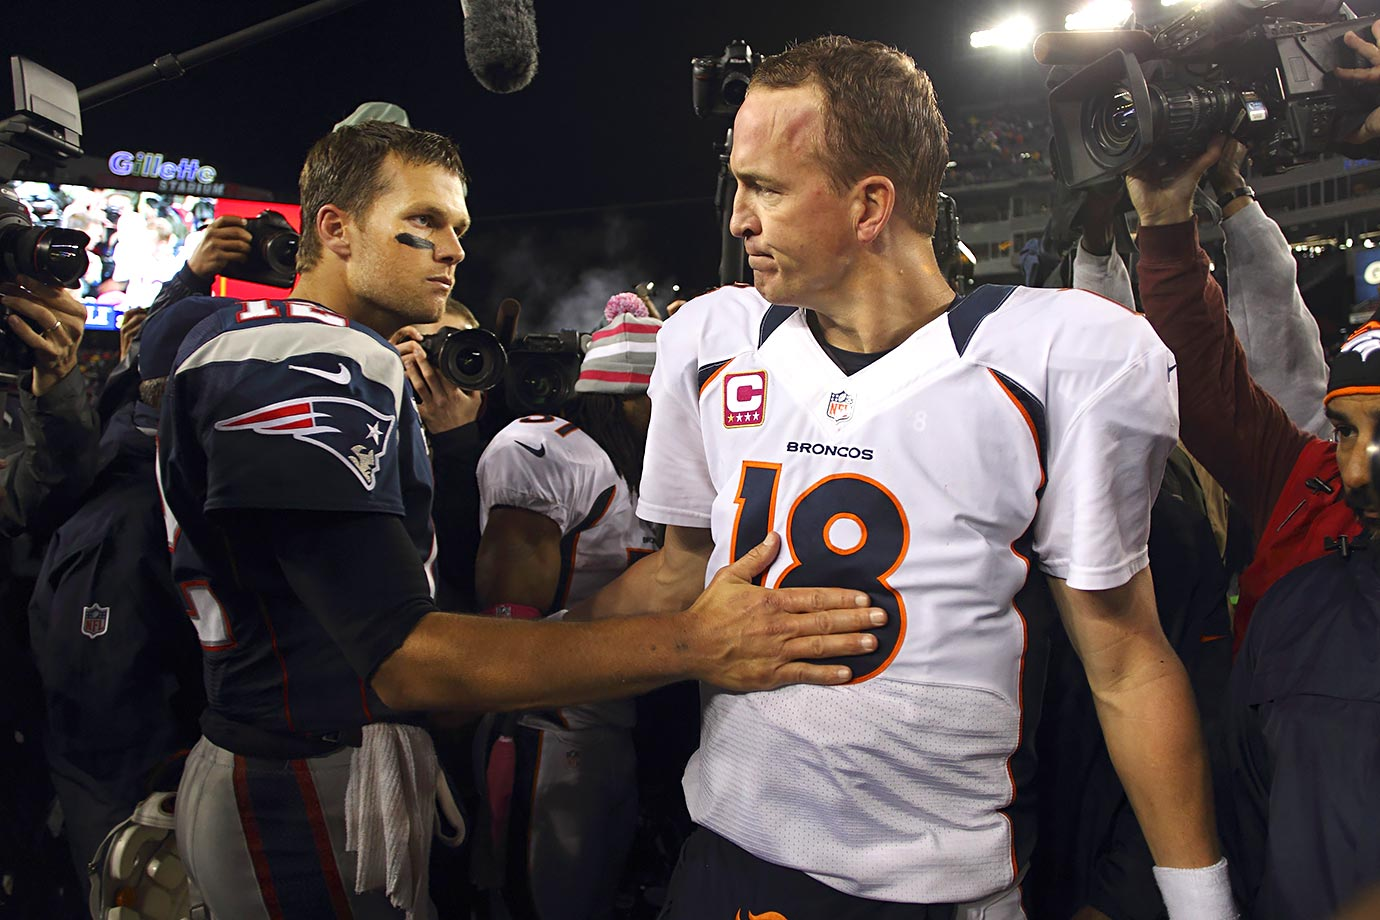 "In the first matchup following Peyton Manning's move from Indianapolis to Denver, Tom Brady's Patriots rolled to a 31-21 victory over the Broncos. Brady finished 23-of-31, with 223 yards passing and two touchdowns (one passing, one rushing). ""Nobody I'd rather have than Tom Brady,"" Patriots coach Bill Belichick said after the game. ""But Manning's a great player."" Manning, who sat out the entire 2011 season with a neck injury, went 31-of-44 for 345 yards and three touchdowns. (Brady 9, Manning 4)"